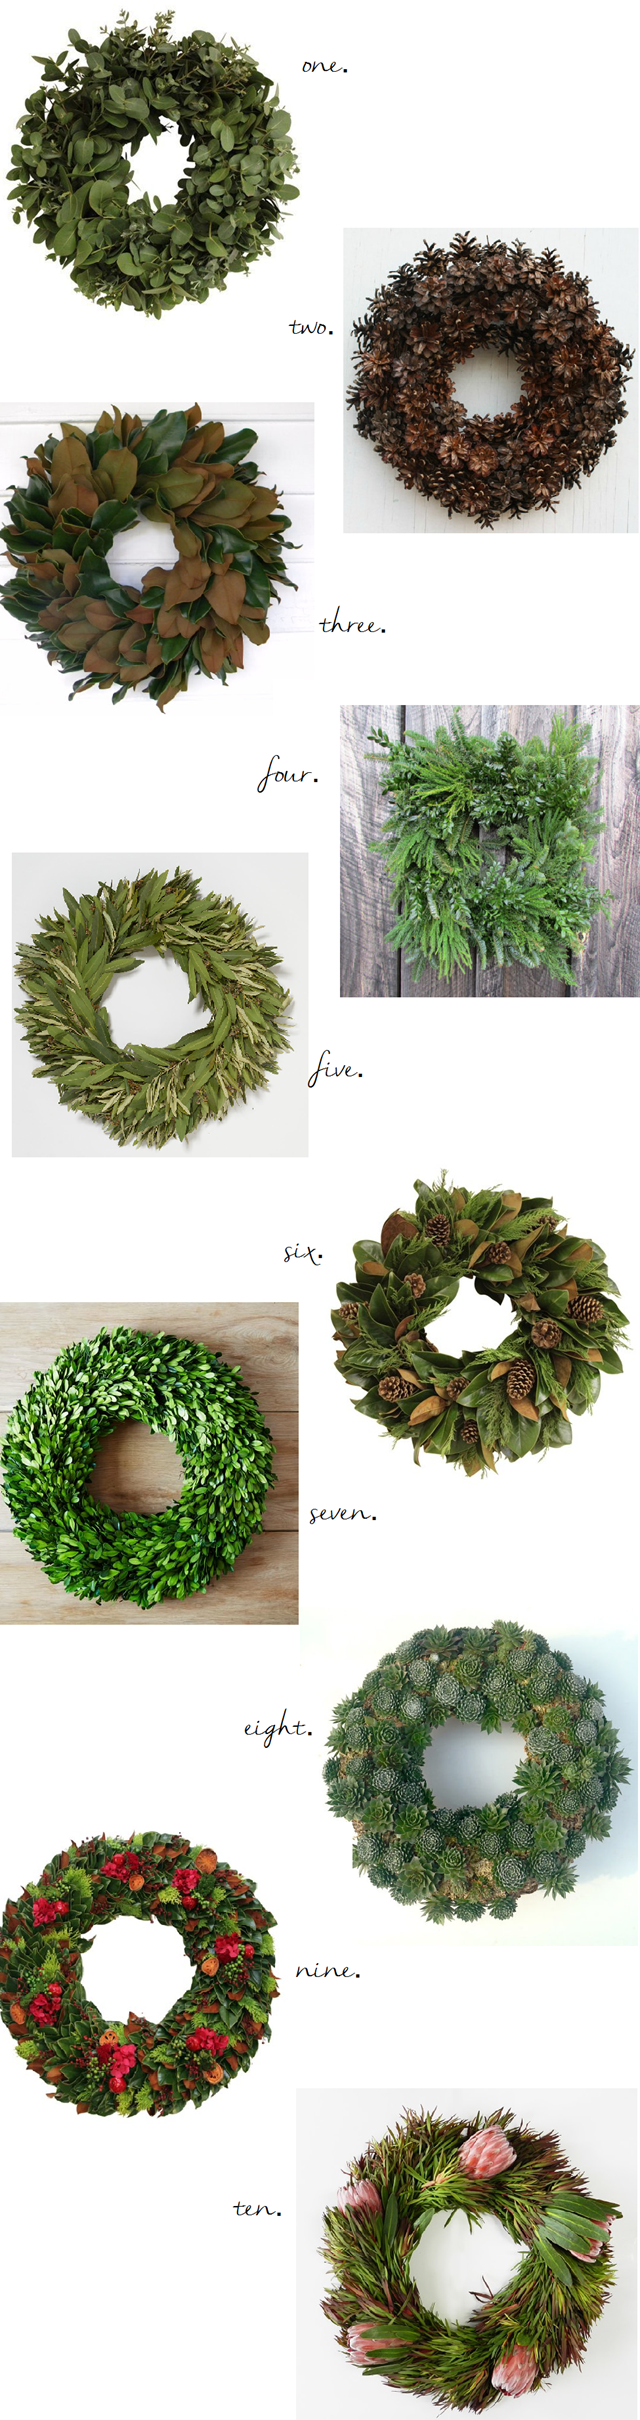 10 Thanksgiving-to-Christmas Wreaths - Emily A. Clark